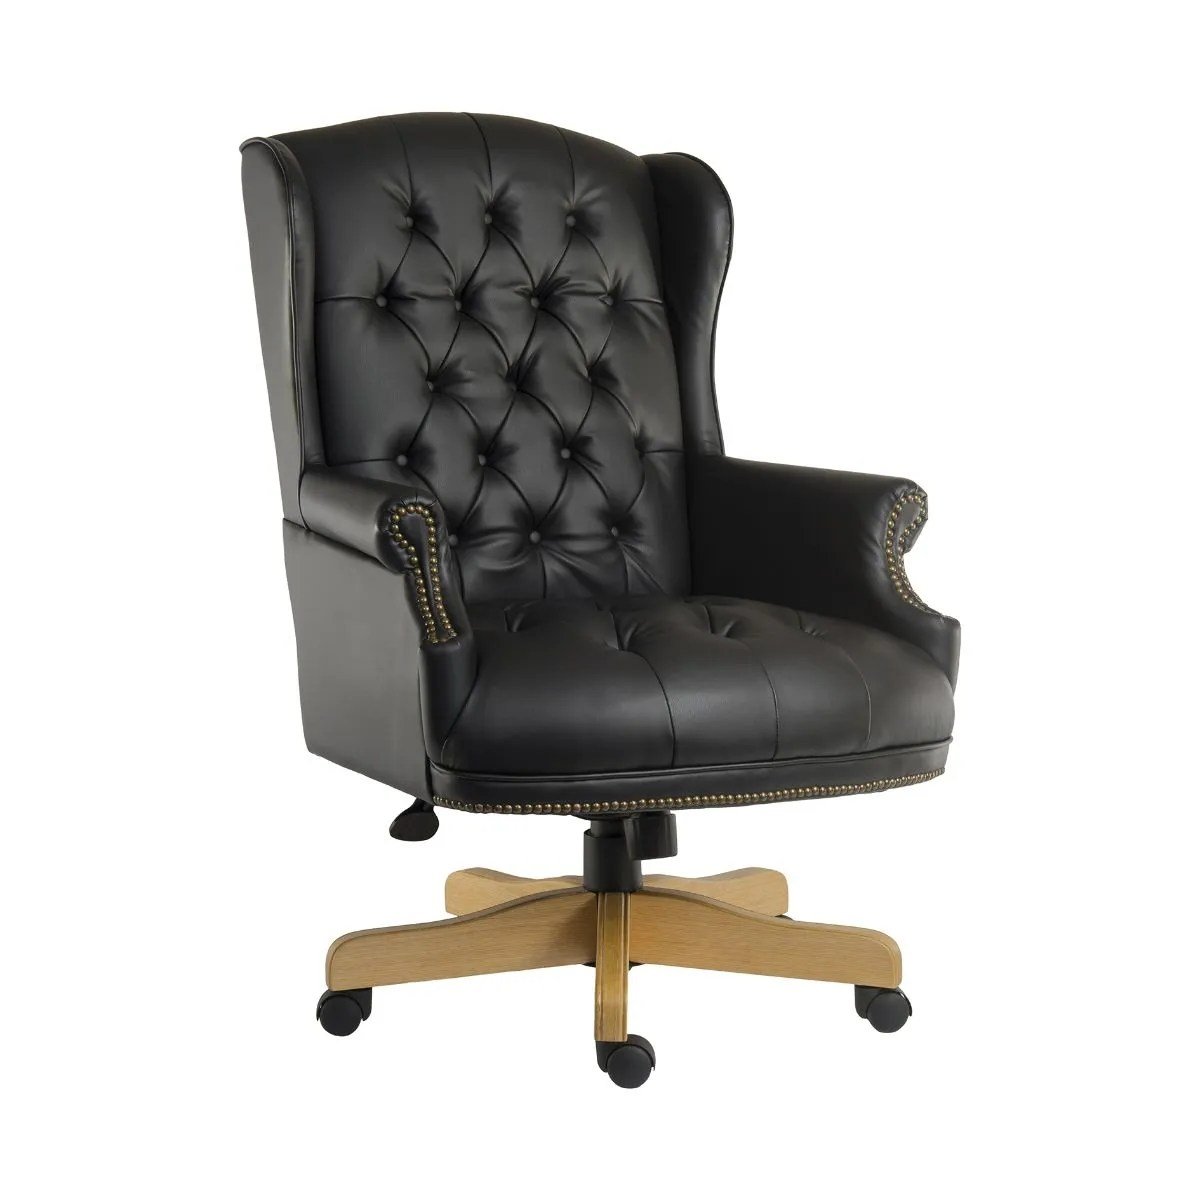 Executive Chairs Chairman Swivel Executive Office Chair Black